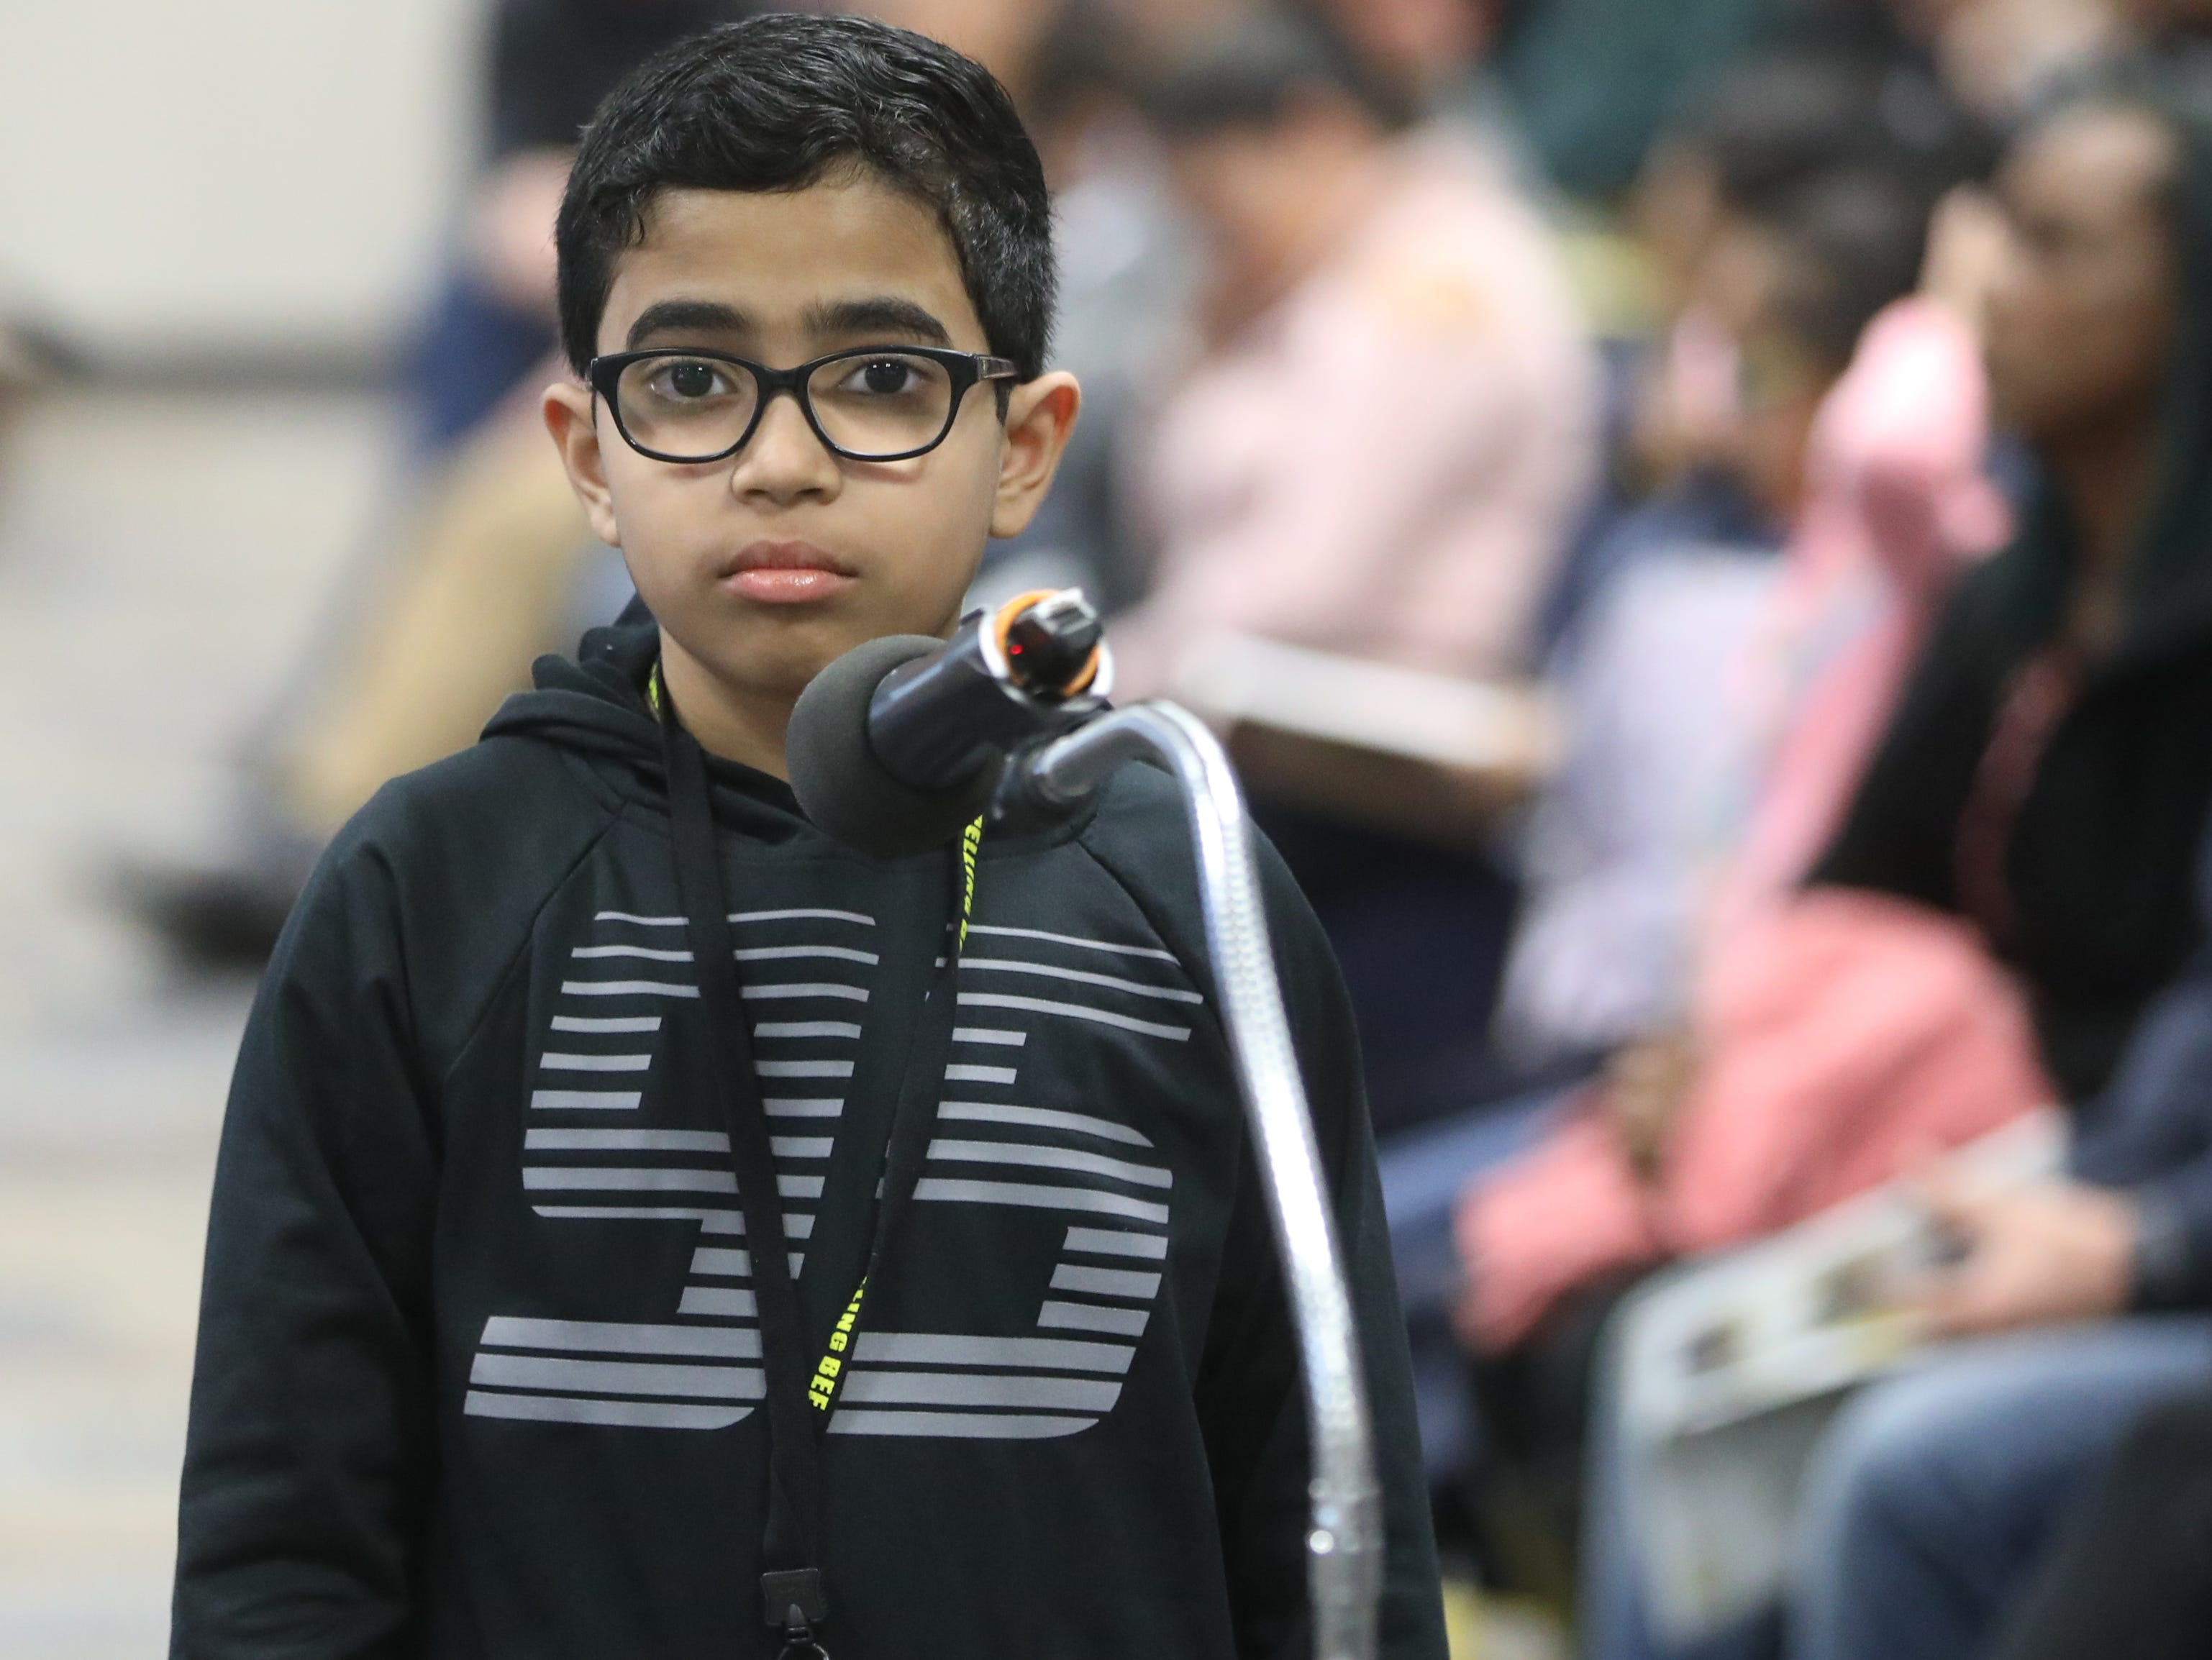 Sarvesvaran Vivekanandan, of River Edge, competes in the first round of the 2019 North Jersey Spelling Bee, in Paramus. Thursday, March 14, 2019